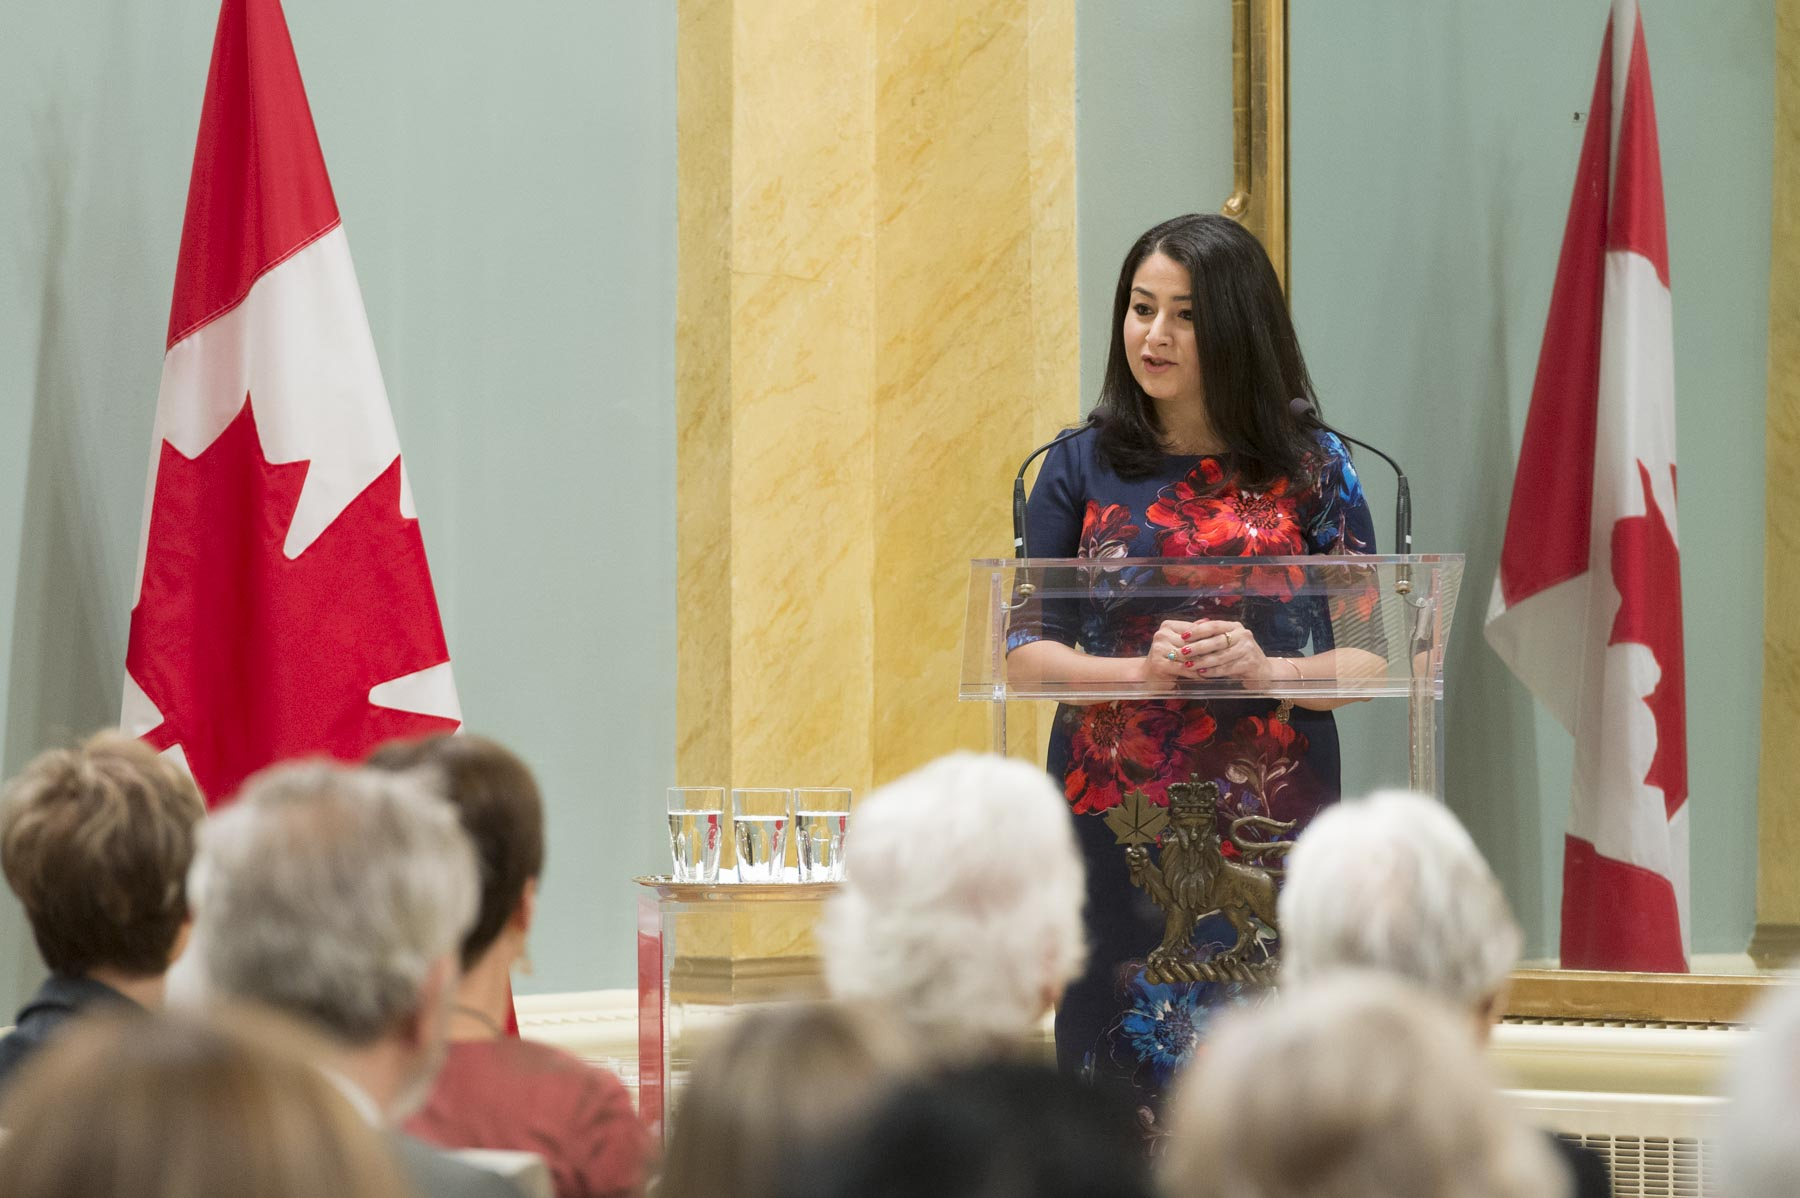 The Honourable Maryam Monsef, Minister of Status of Women, also delivered remarks.